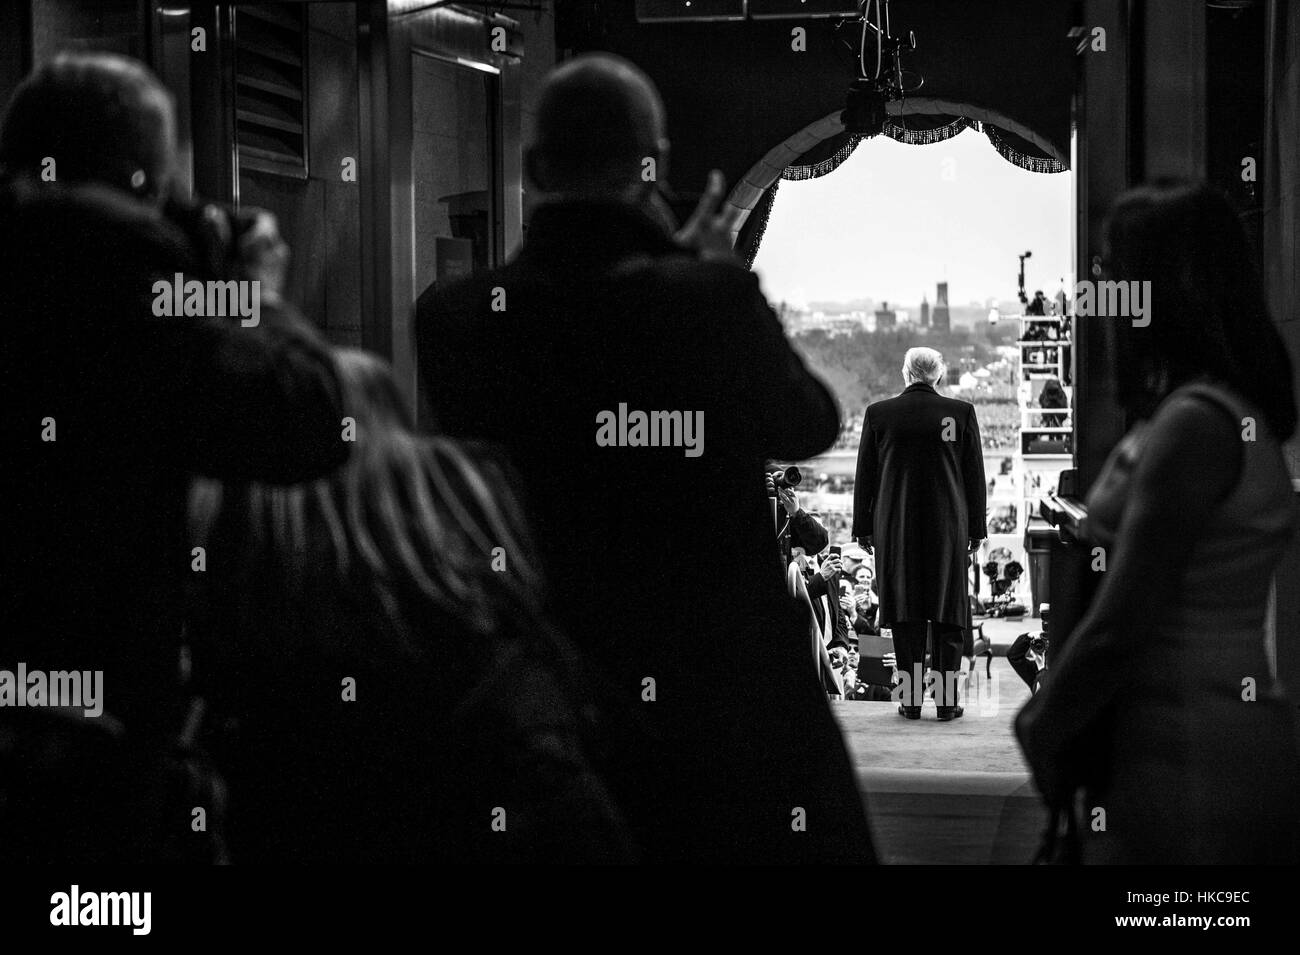 U.S. President Donald Trump walks out from the U.S. Capitol during the 58th Presidential Inauguration January 20, - Stock Image